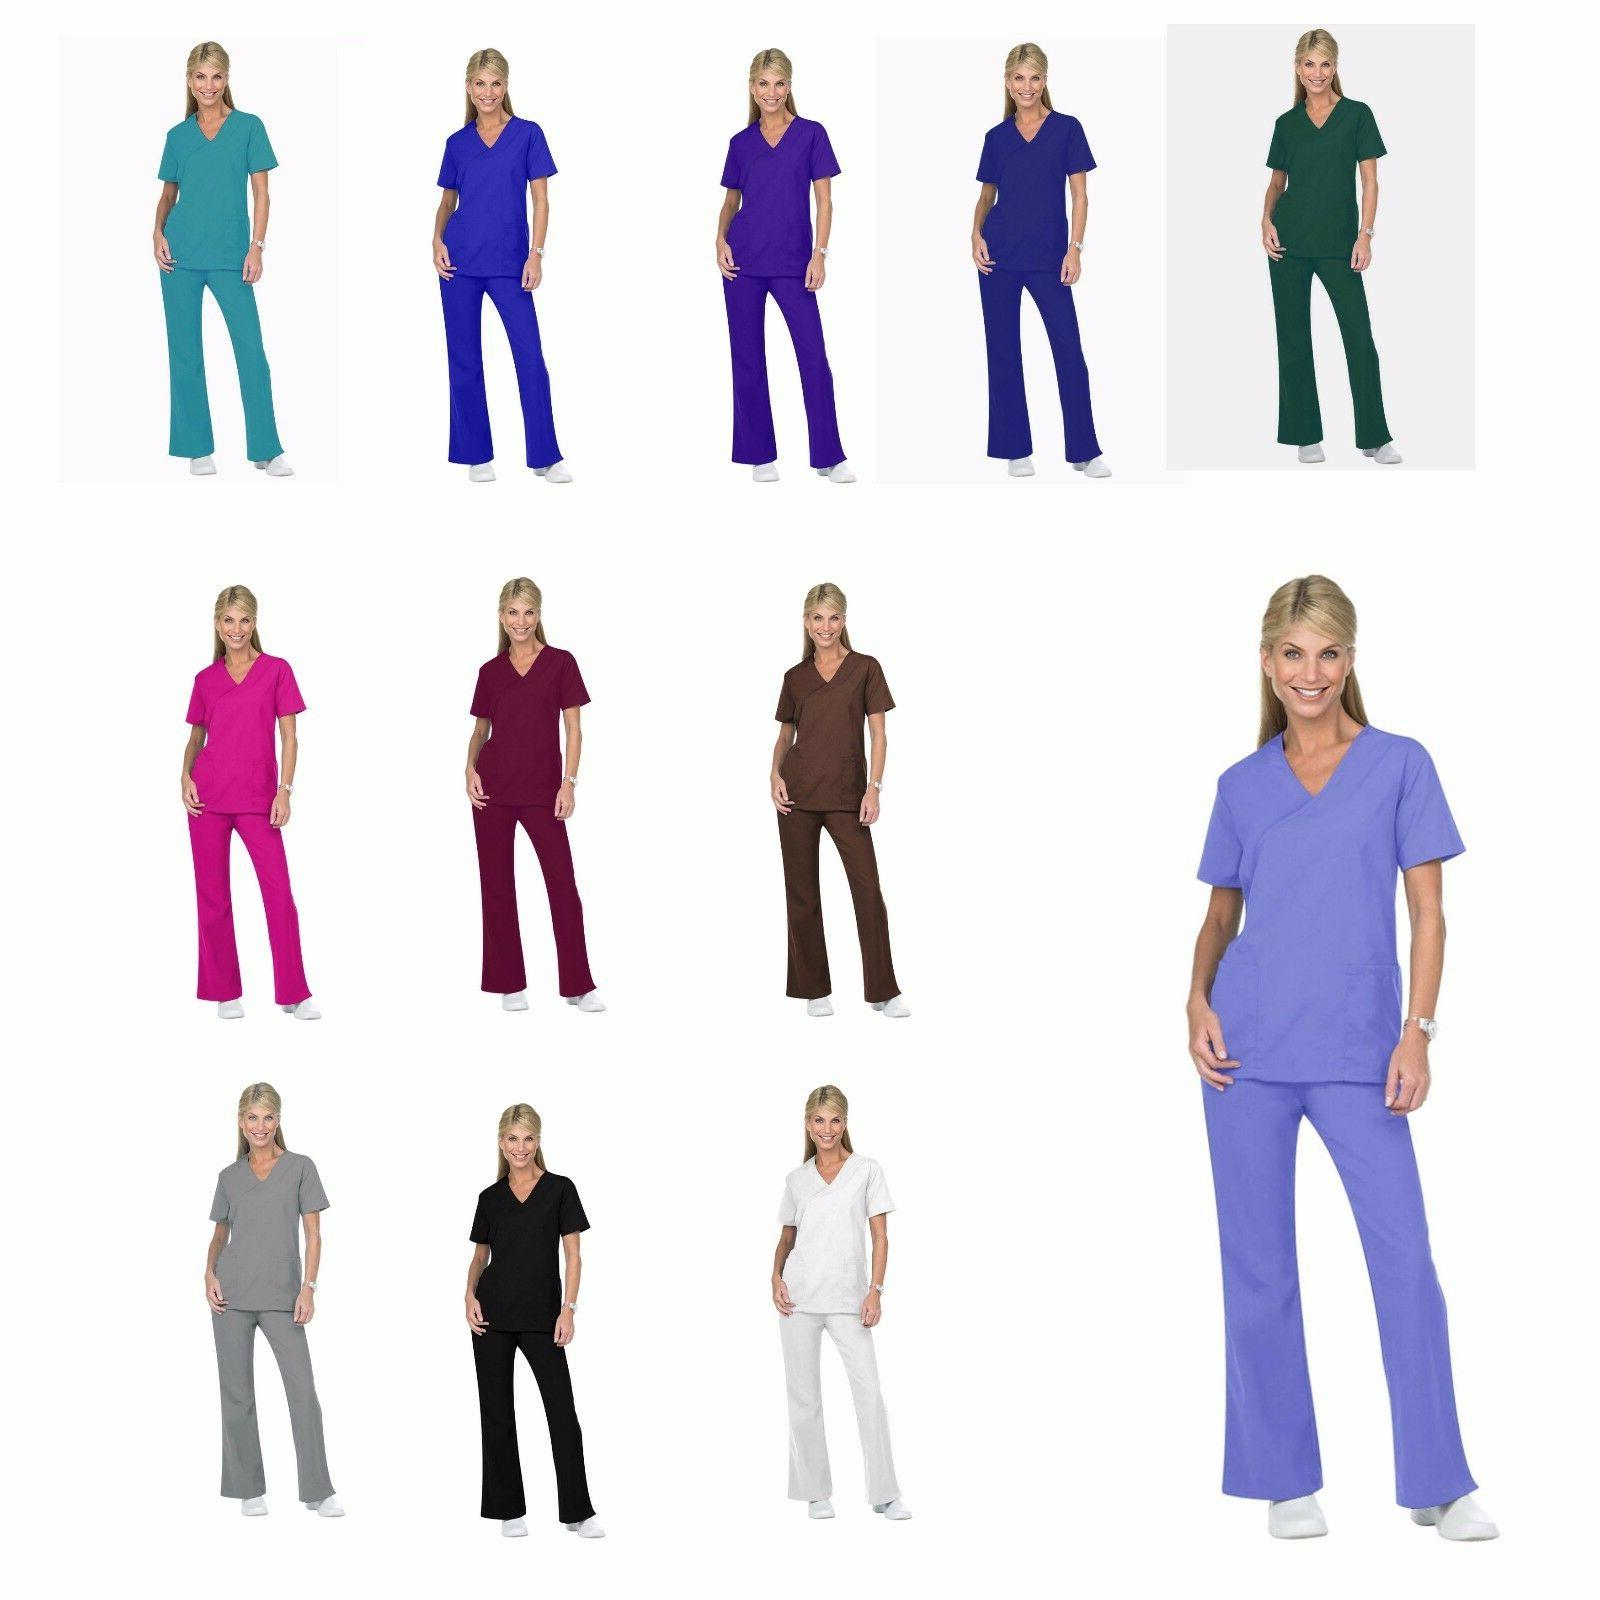 Unisex Men/Women Natural Uniforms Medical Hospital Nursing S